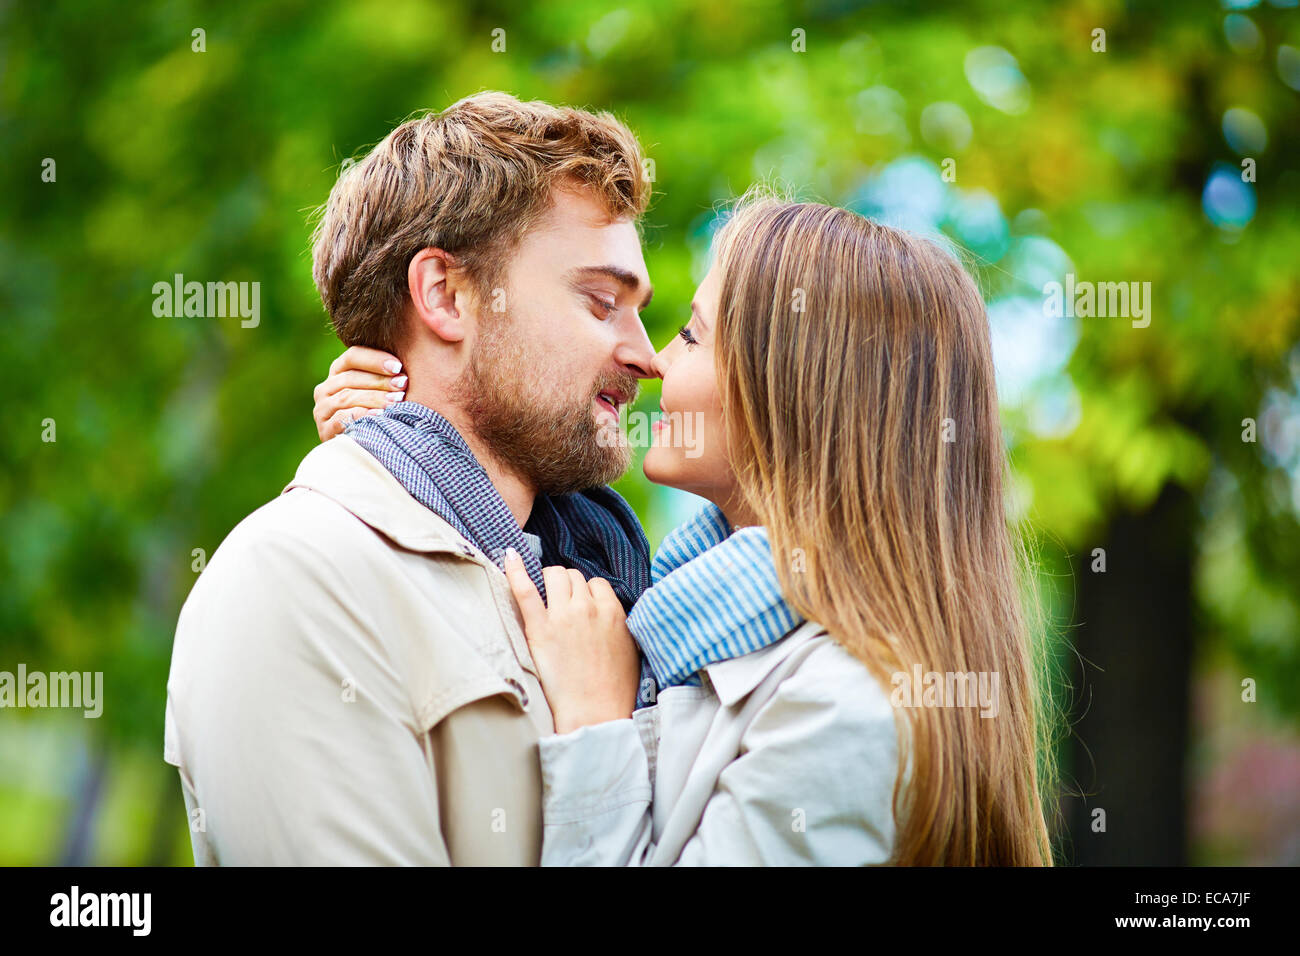 Romantic couple looking at one another in embrace - Stock Image